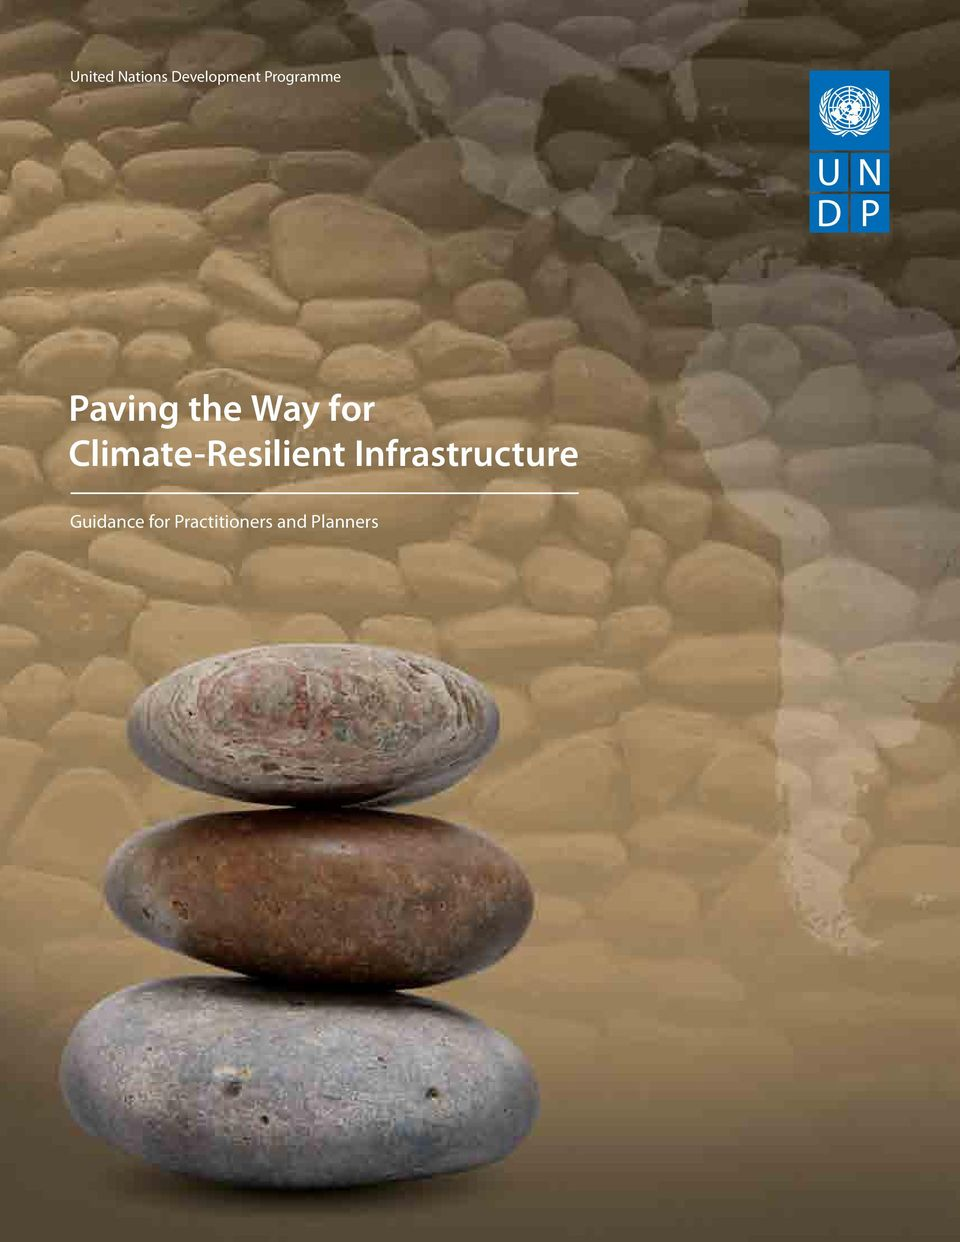 Climate-Resilient